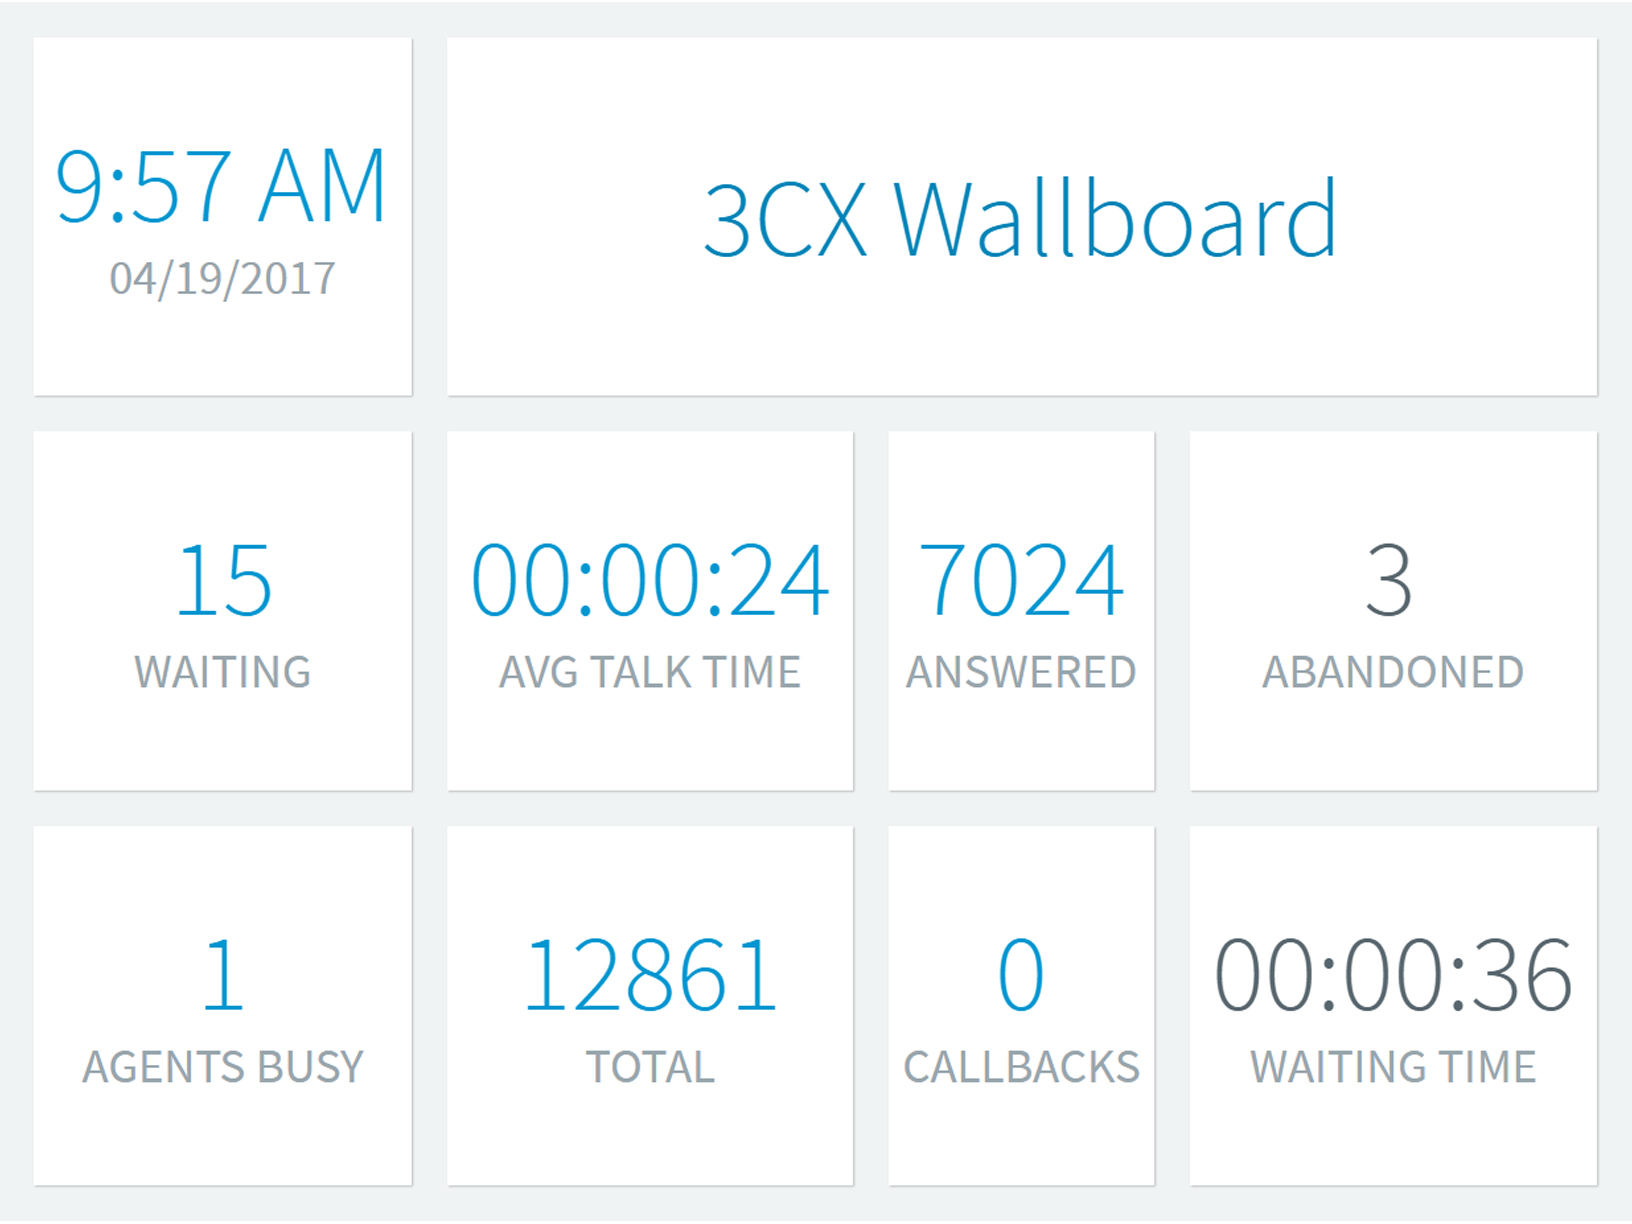 3CX Wallboard